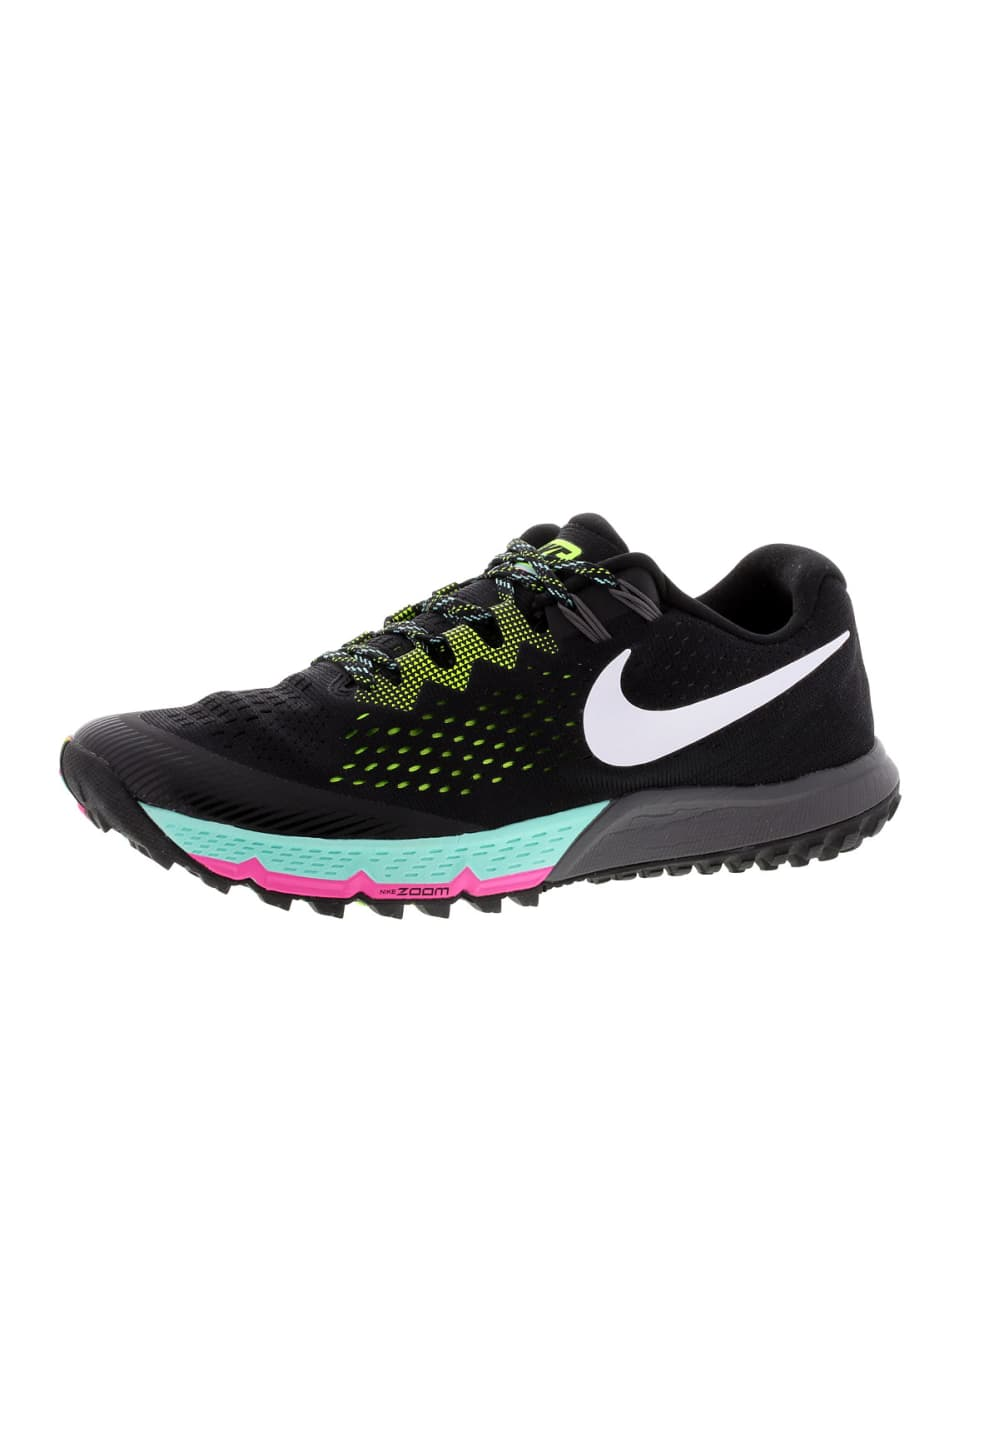 new product 7812a d89fe Nike Air Zoom Terra Kiger 4 - Running shoes for Men - Black